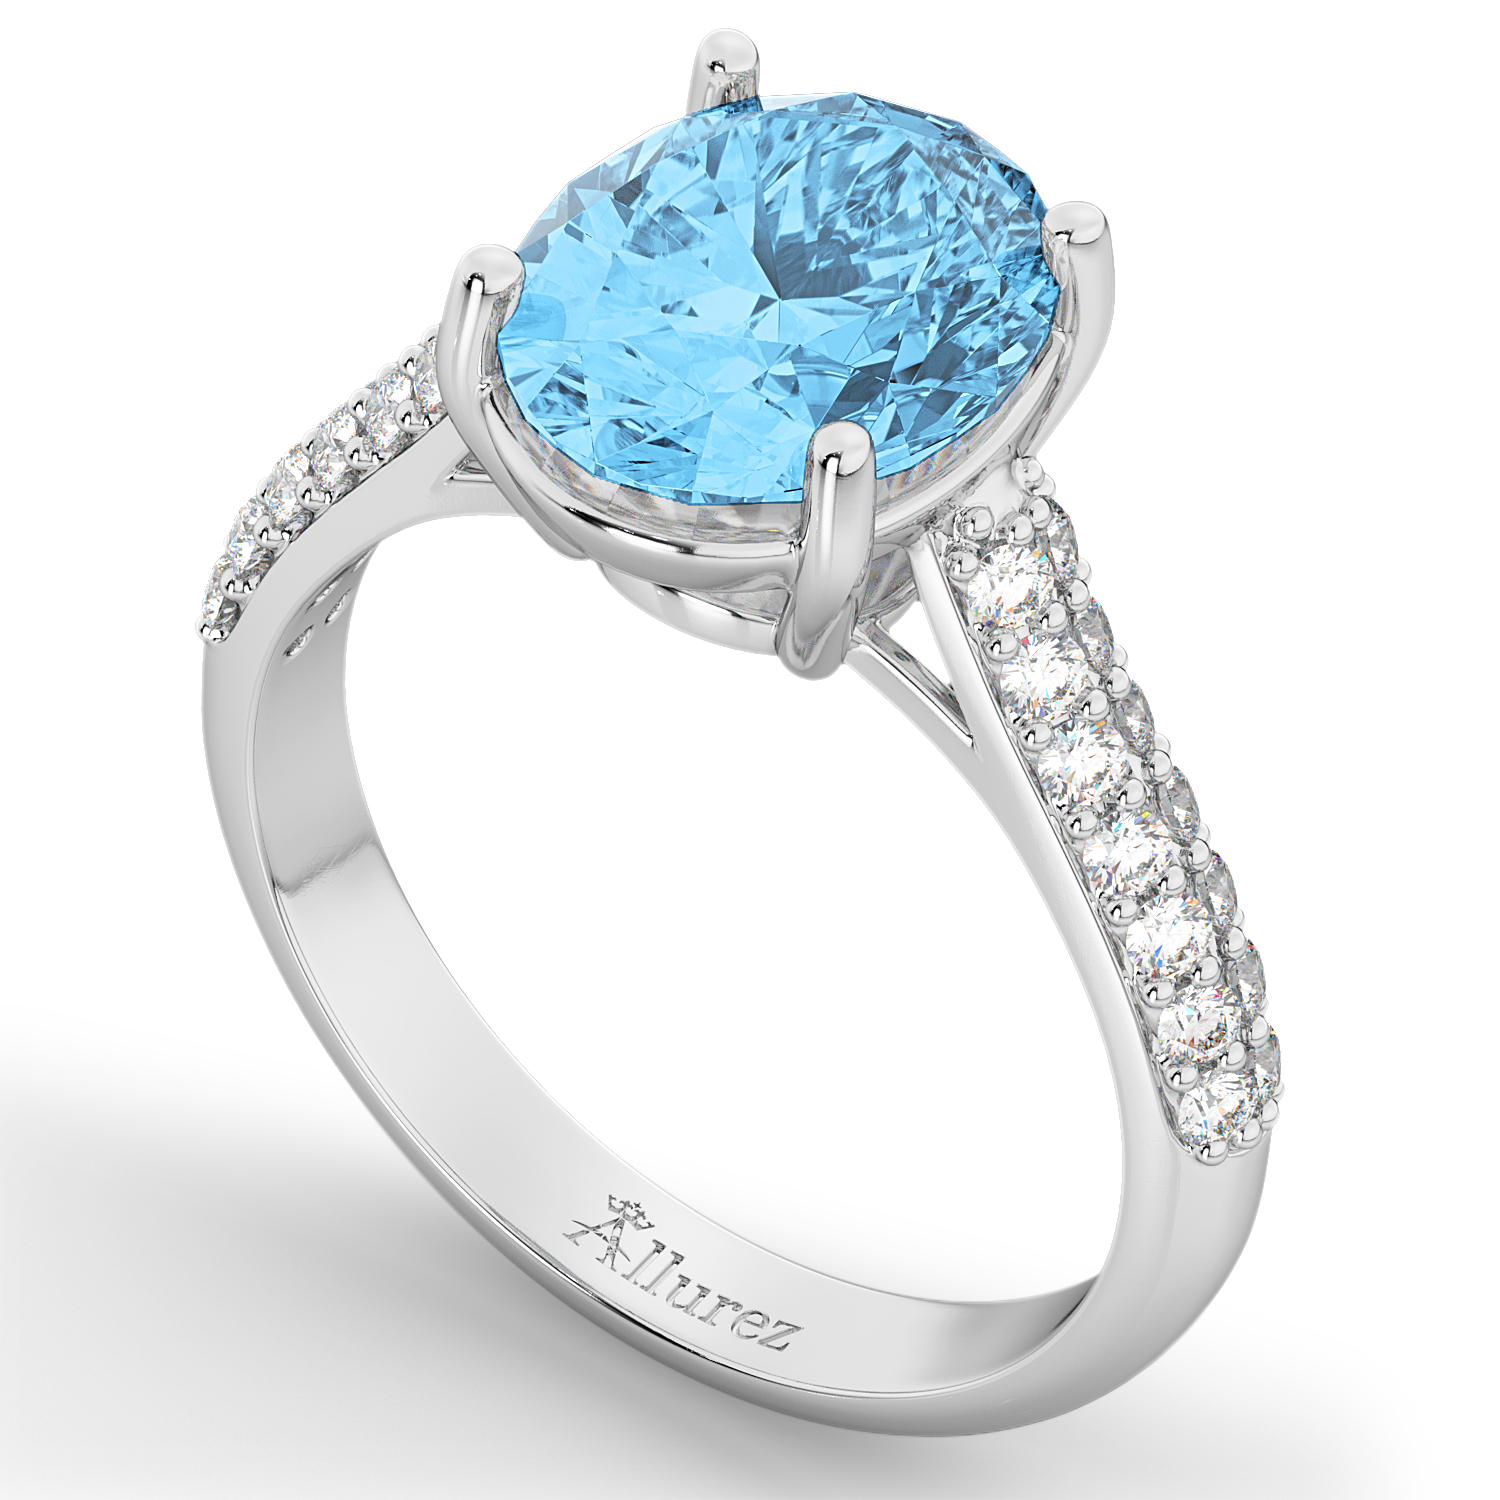 Oval Blue Topaz & Diamond Engagement Ring 14k White Gold 4 42ct